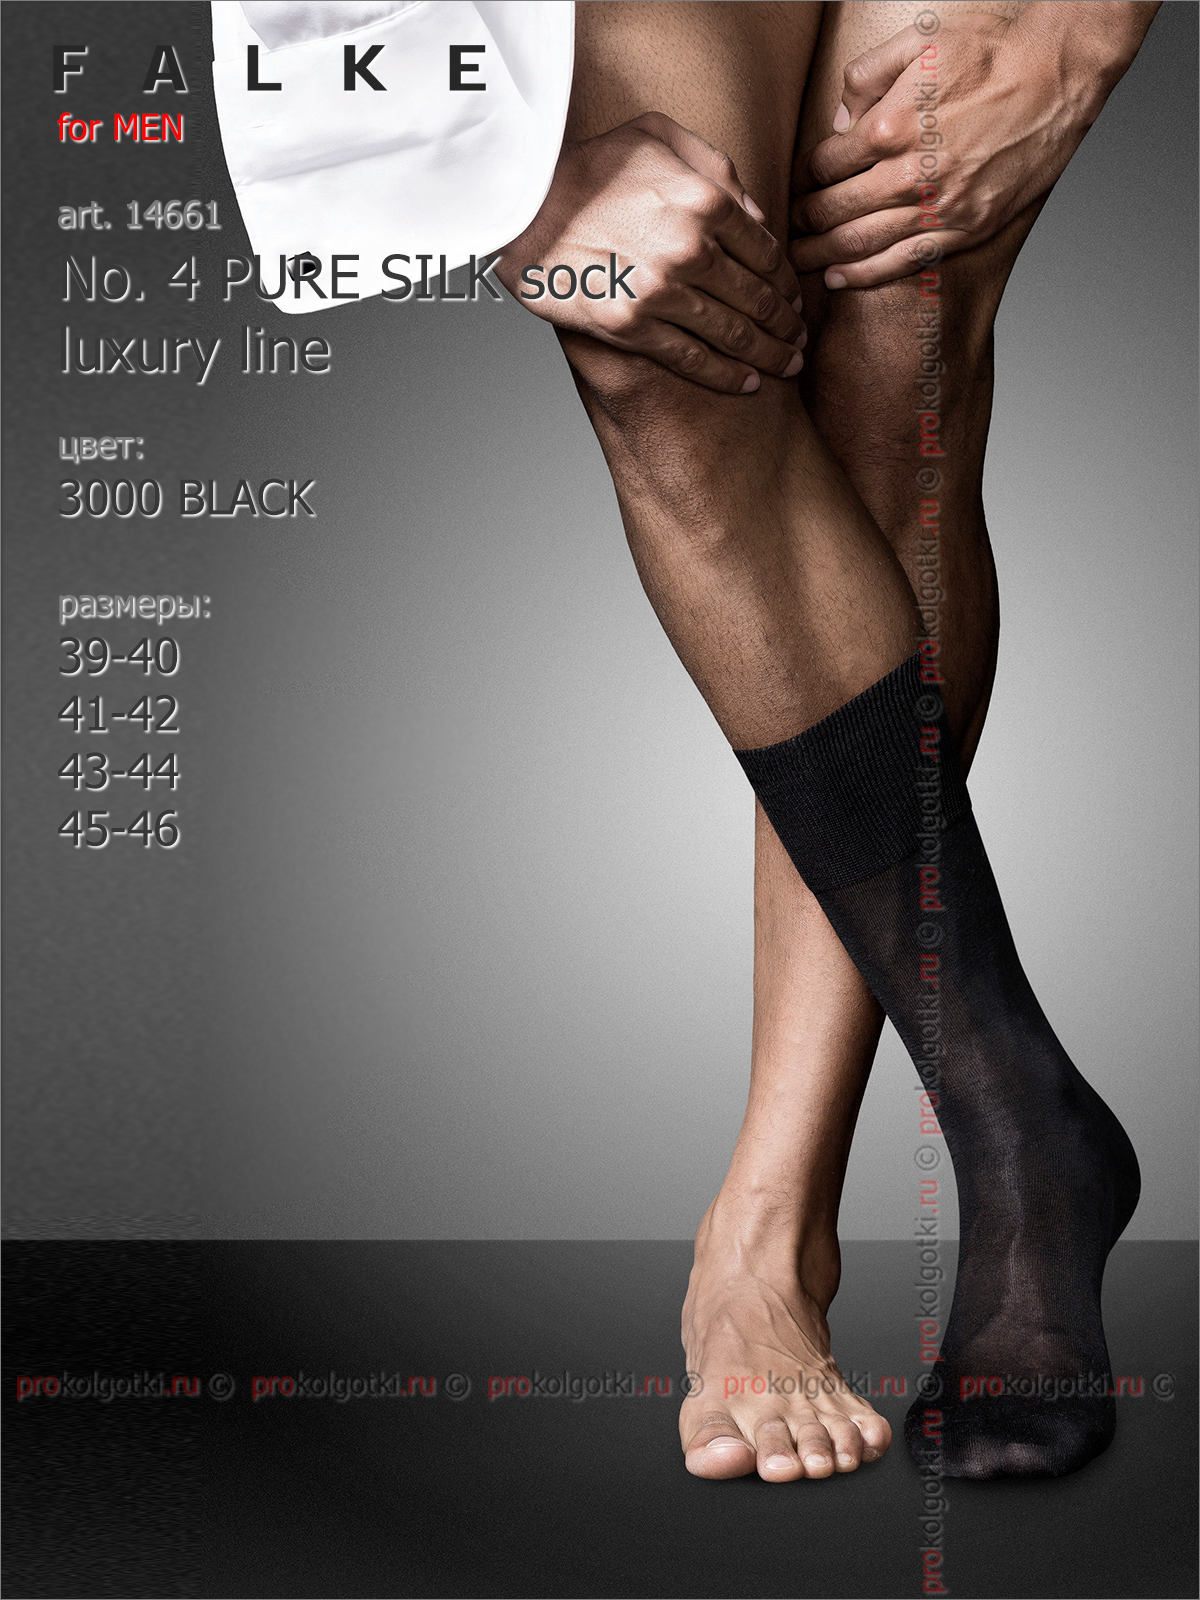 Носки Falke Art. 14661 No. 4 Pure Silk Sock - фото 2